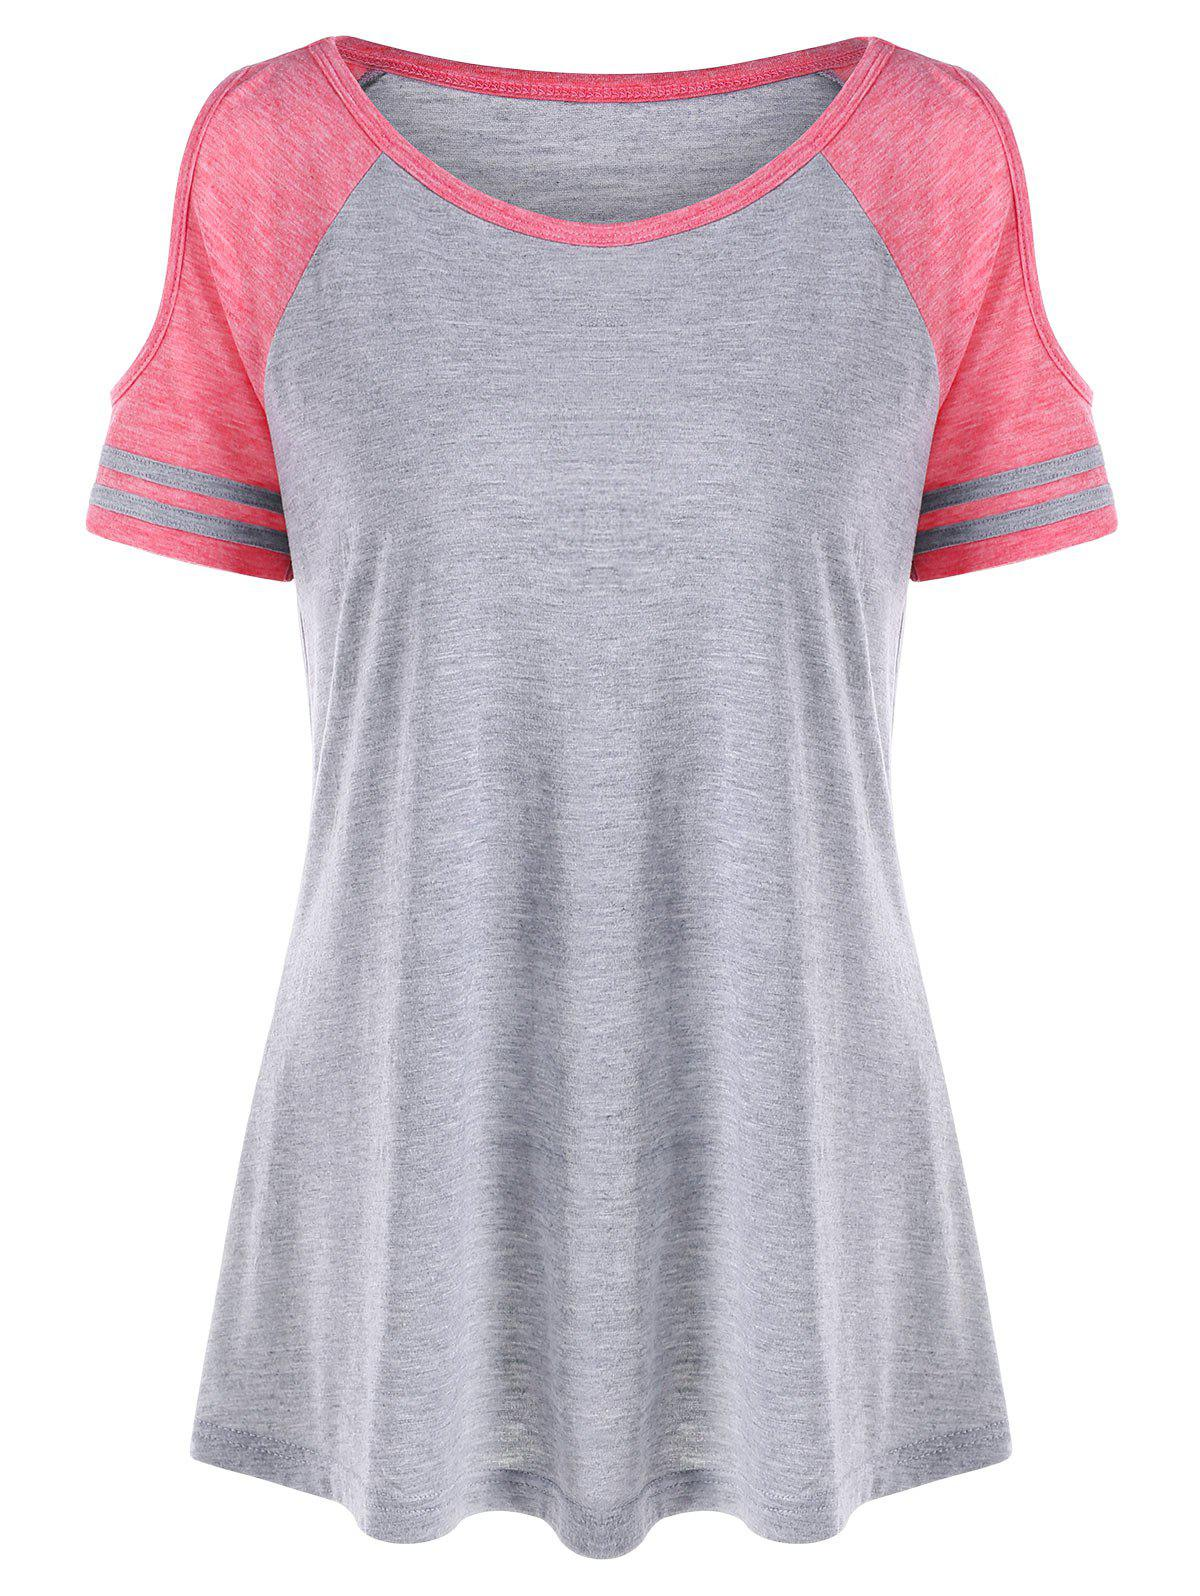 Cold Shoulder Two Tone T-shirt - COLORMIX 2XL